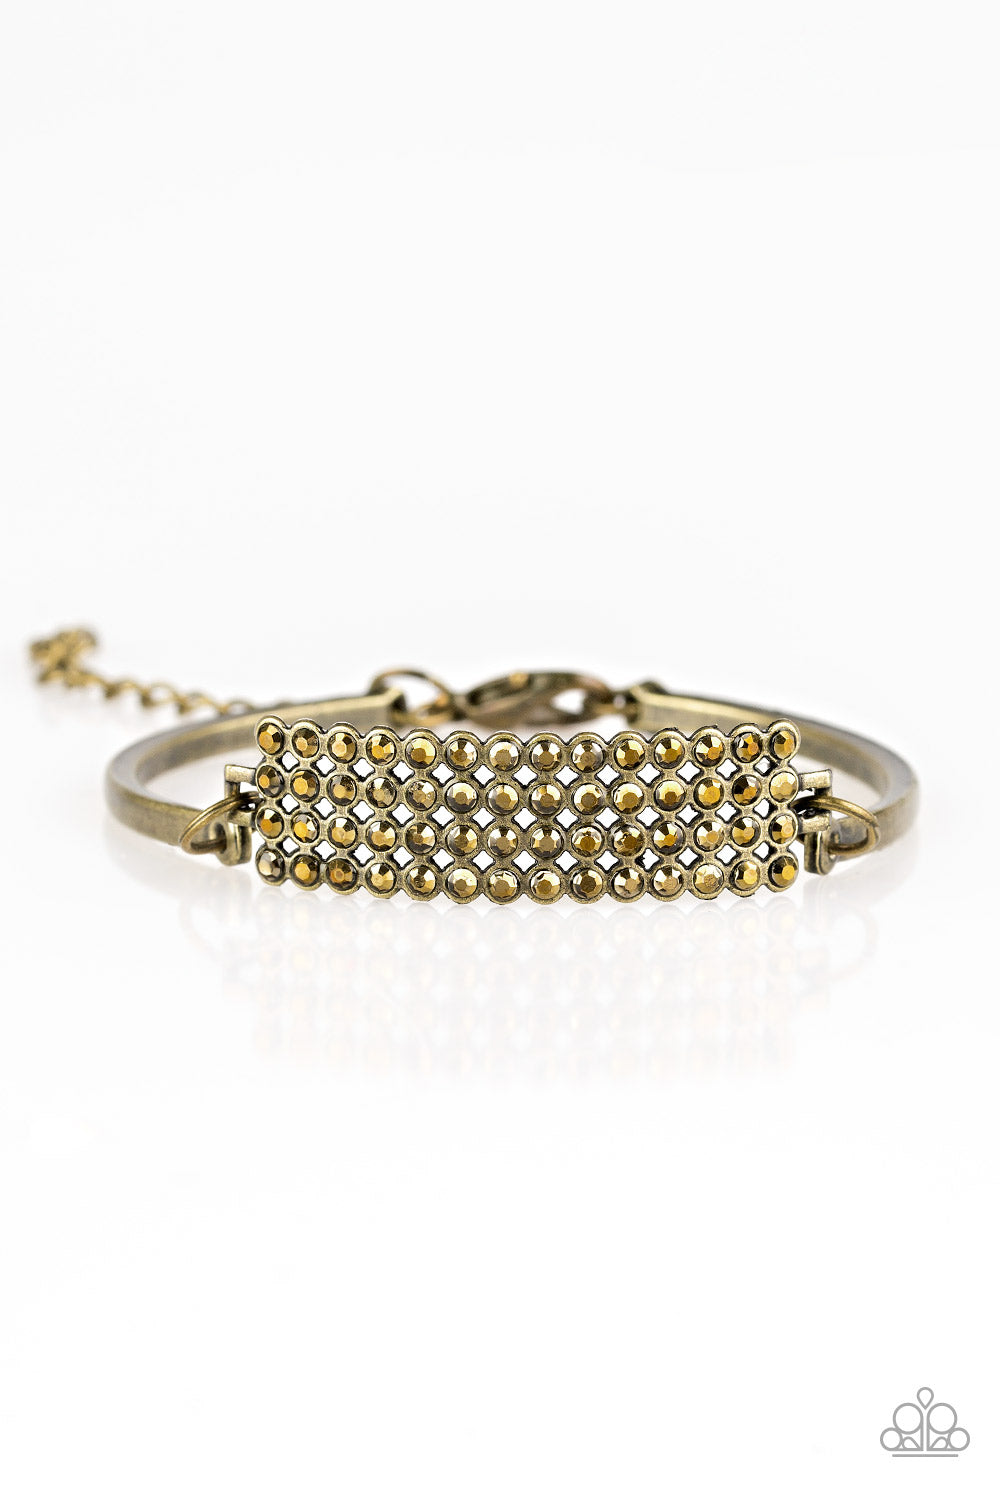 Top Class Class Brass Bracelet - The Bling Peddler - Paparazzi Accessories